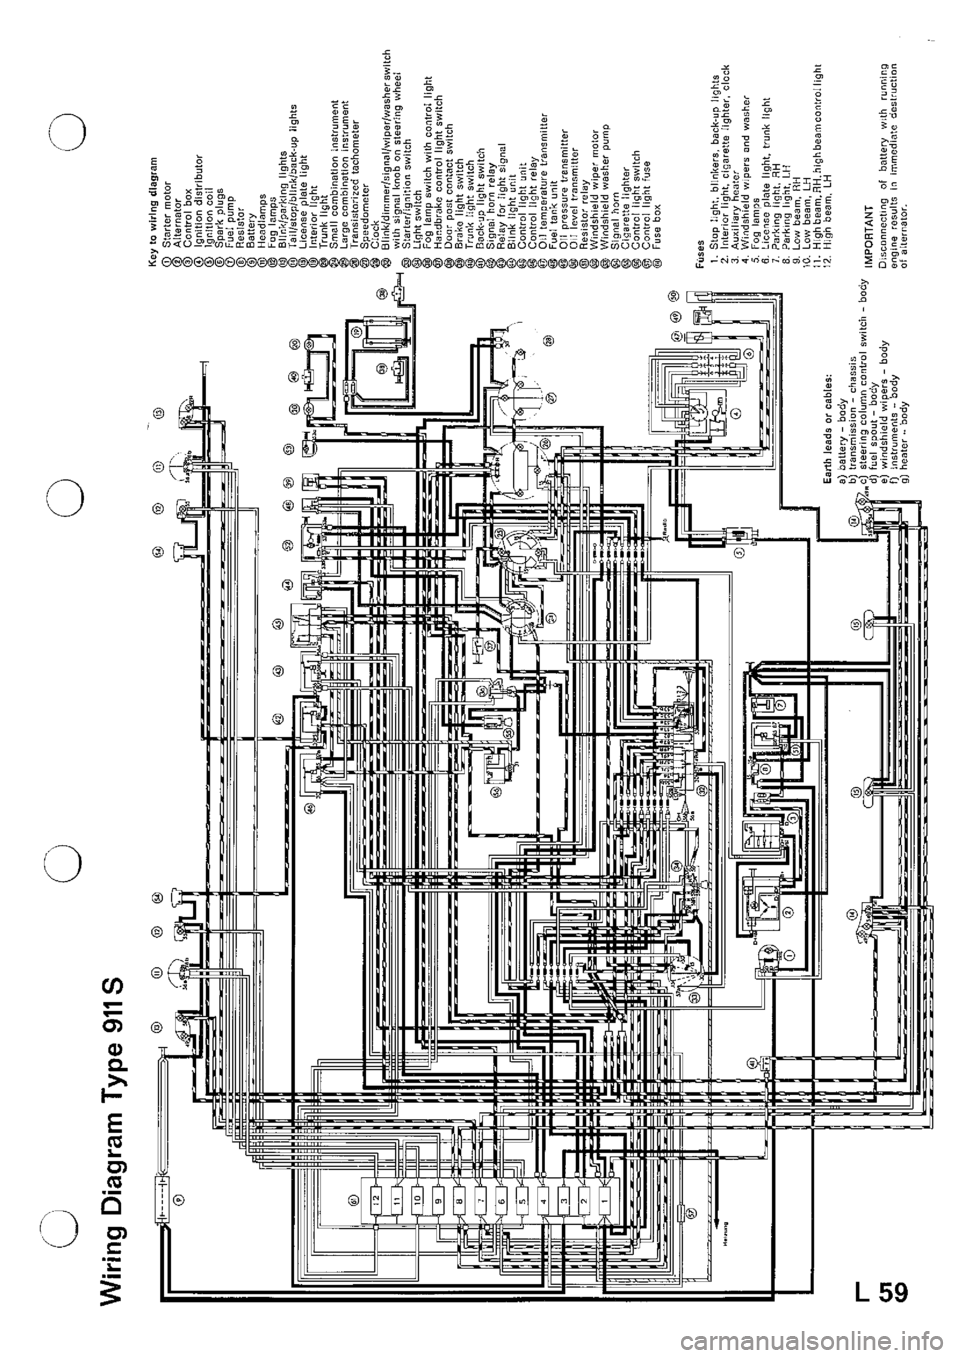 Porsche Wiring Diagram Results Electrical Diagrams Lights Schematic Evinrude Boat Motor 911 1970 1 G